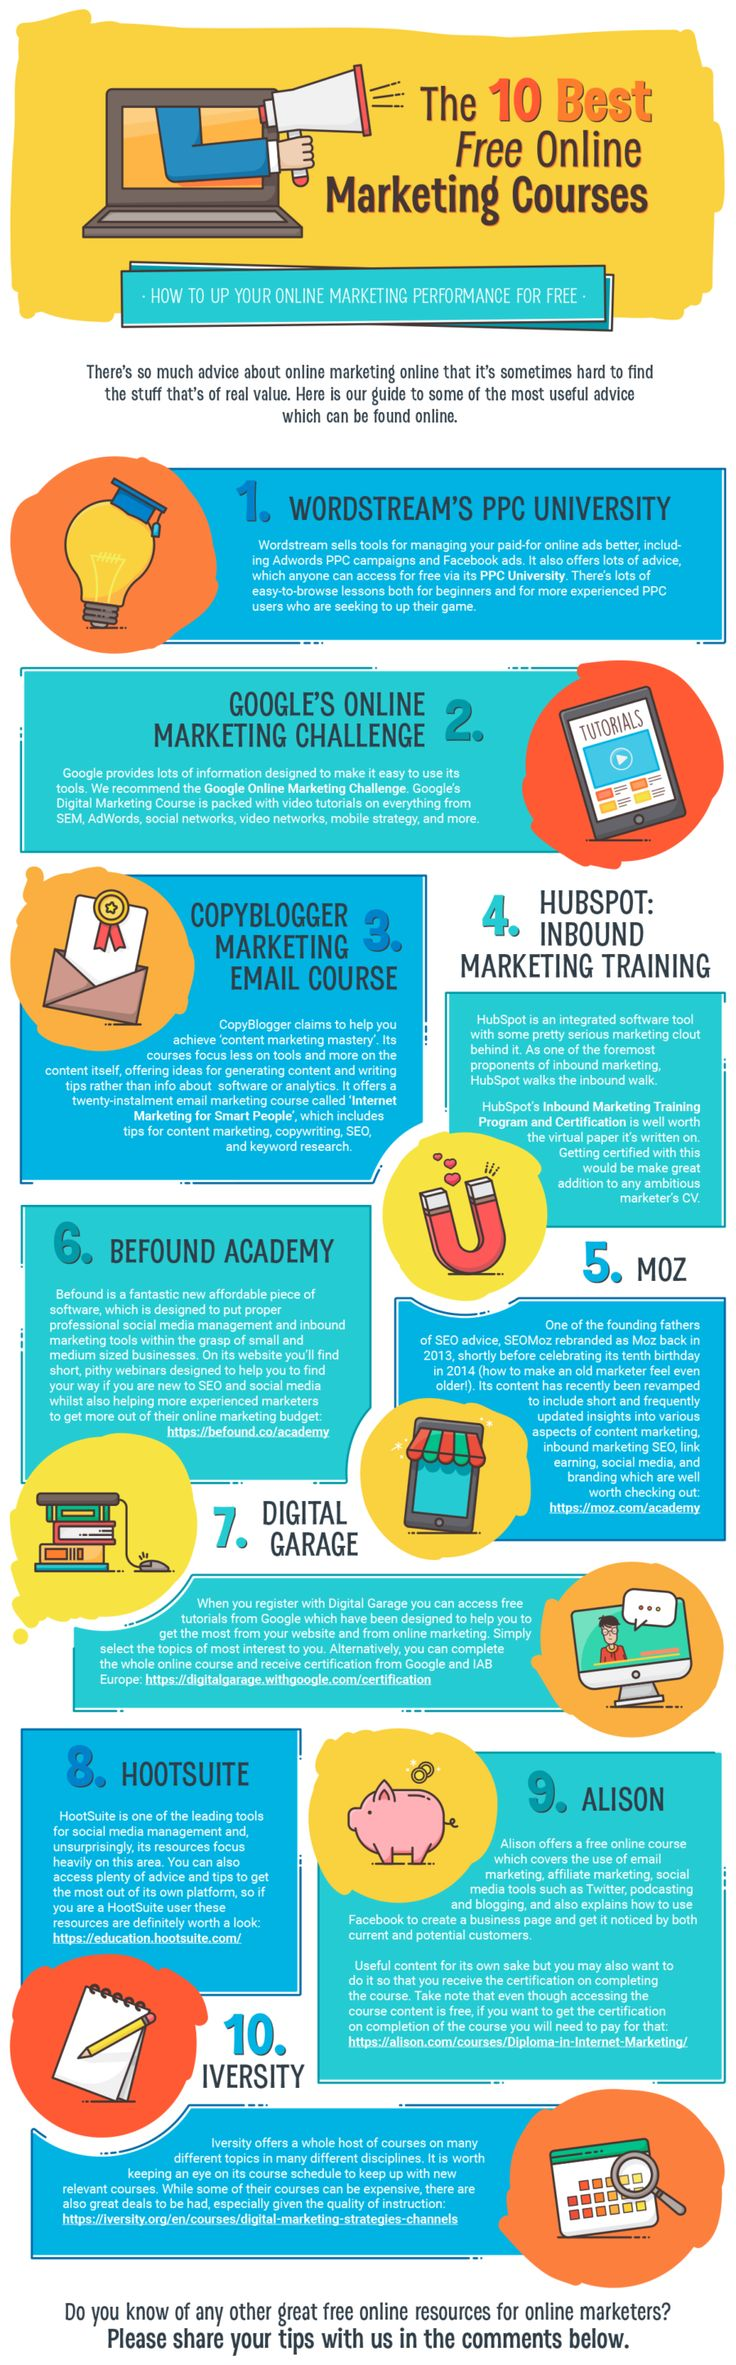 10 Best Free #Online #Marketing Courses - DAL WEB Do you fancy an infographic? There are a lot of them online, but if you want your own please visit http://linfografico.com/en/prices/ Online girano molte infografiche, se ne vuoi realizzare una tutta tua visita http://www.linfografico.com/prezzi/